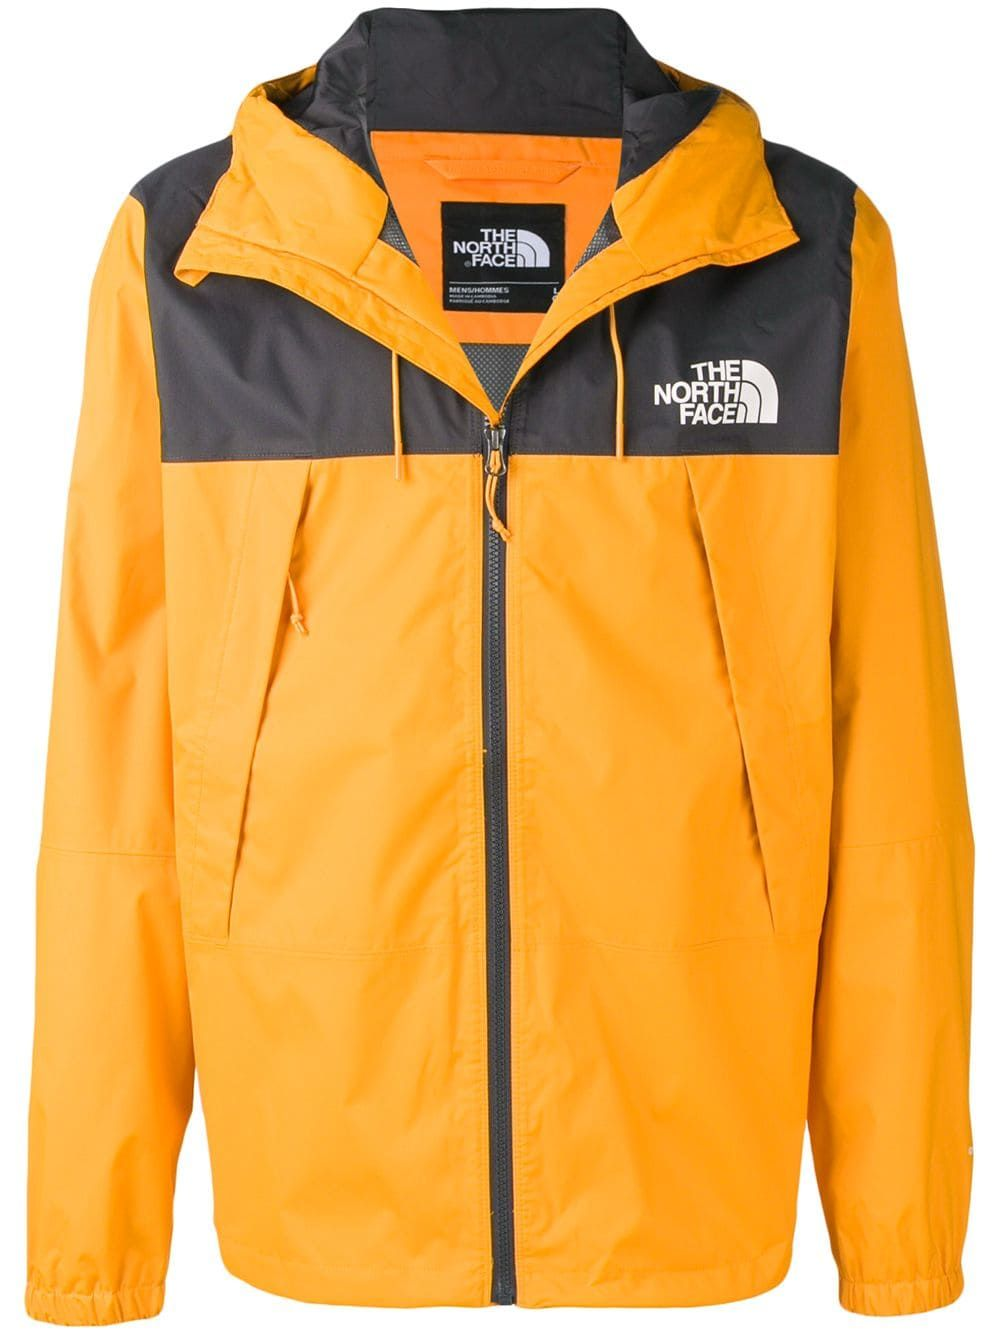 The North Face The North Face Hooded Zip Up Jacket Orange Thenorthface Cloth The North Face Zip Ups Jackets [ 1334 x 1000 Pixel ]